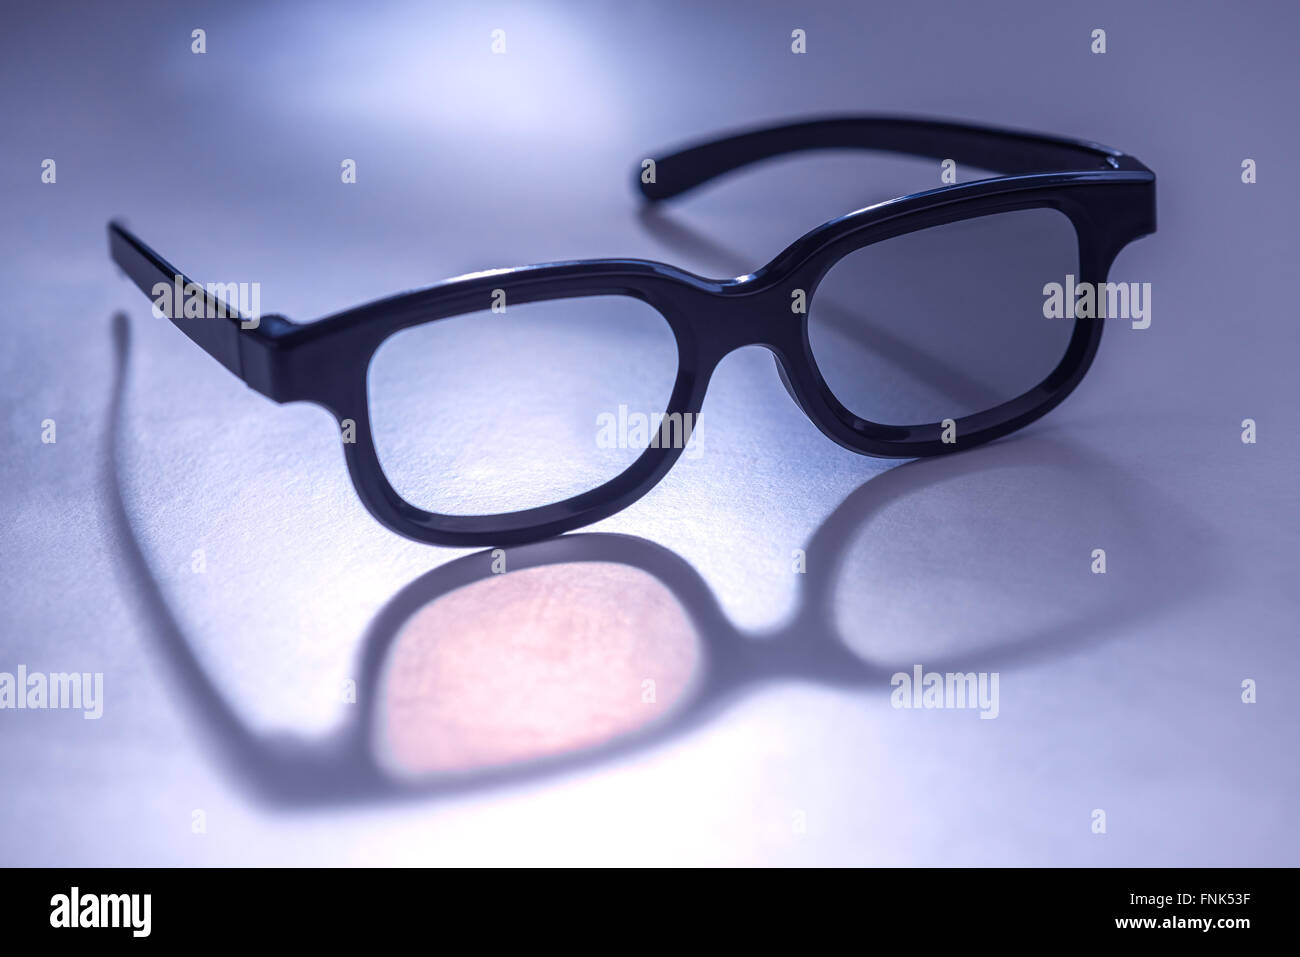 3D glasses concept close up - Stock Image